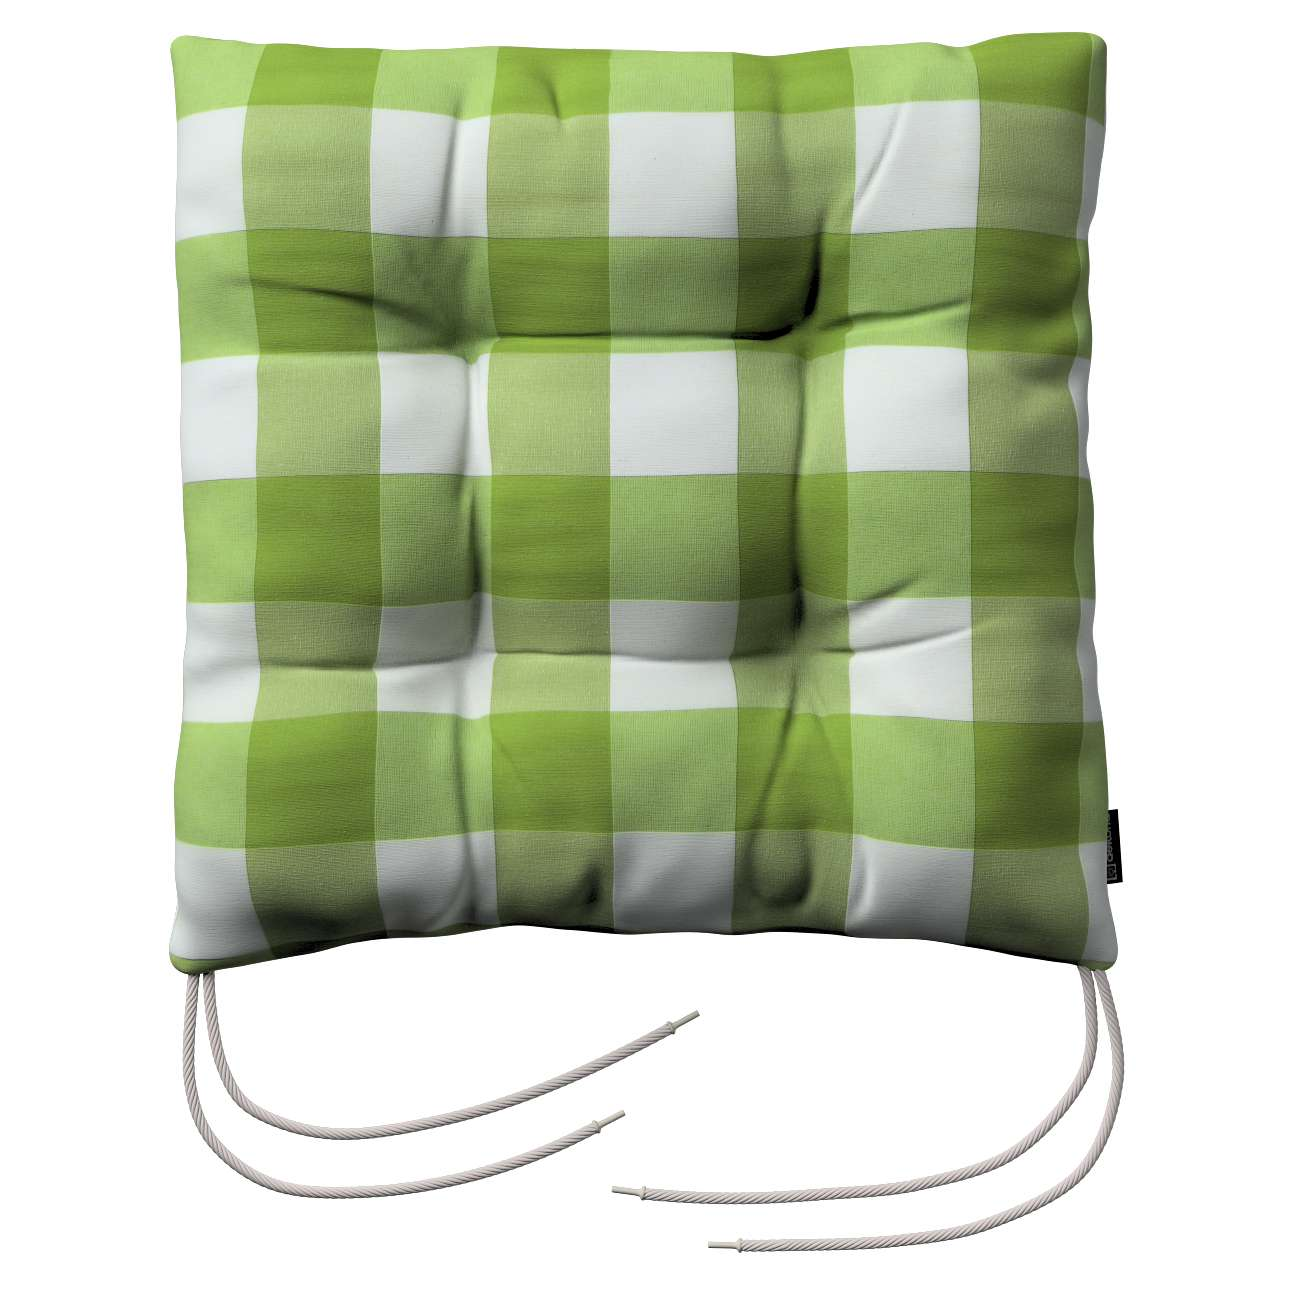 Jacek seat pad with ties 40 x 40 x 8 cm (16 x 16 x 3 inch) in collection Quadro, fabric: 136-36